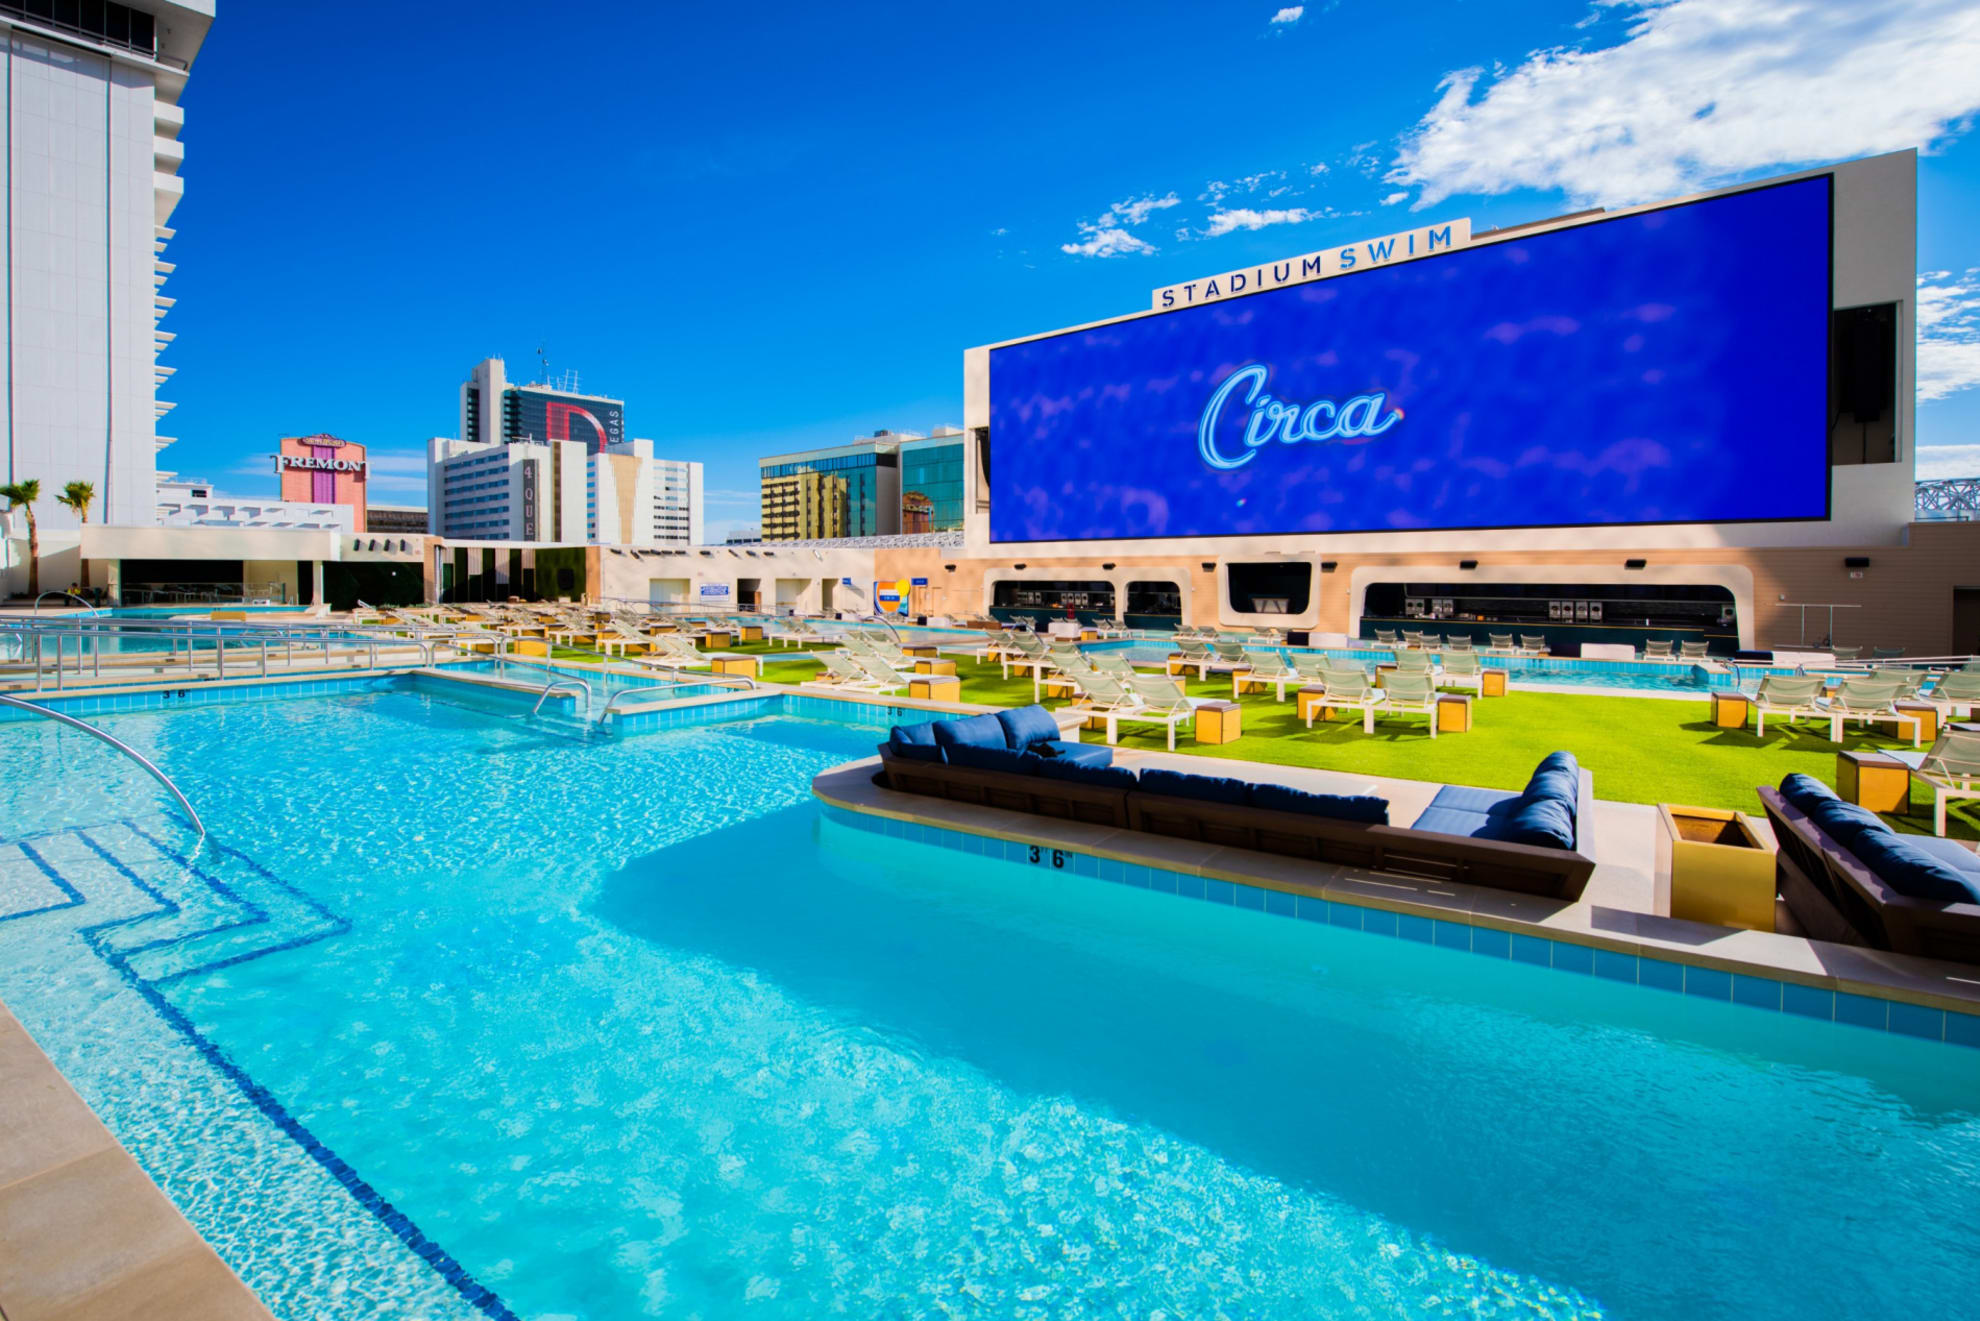 Sports pool betting in private clubs anonymously buy bitcoins ukraine